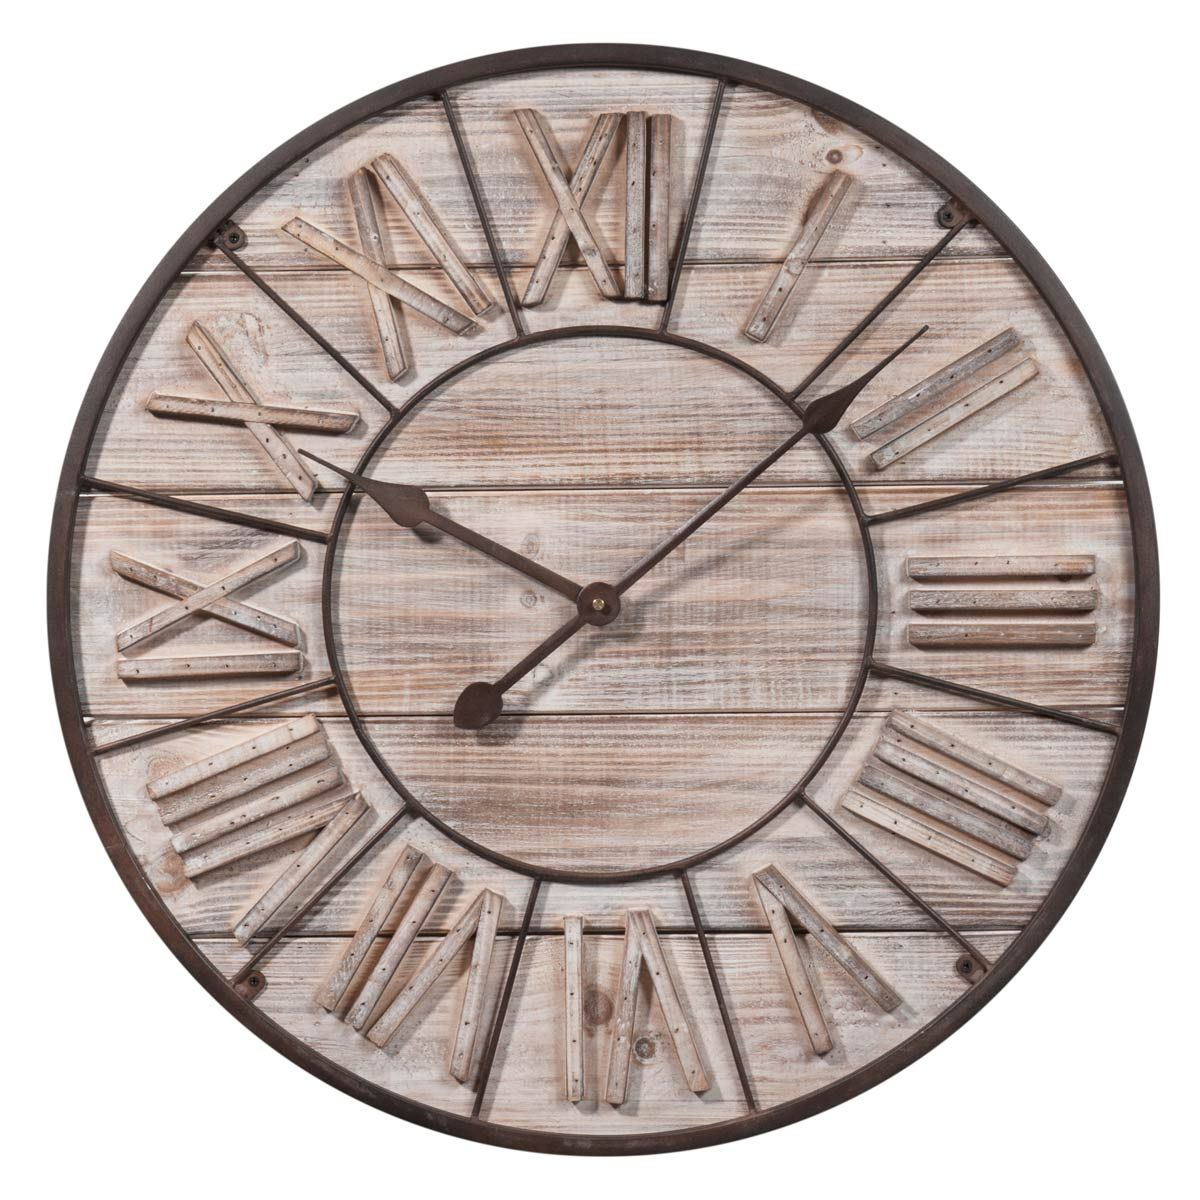 horloge en bois d 60 cm toscana maisons du monde. Black Bedroom Furniture Sets. Home Design Ideas